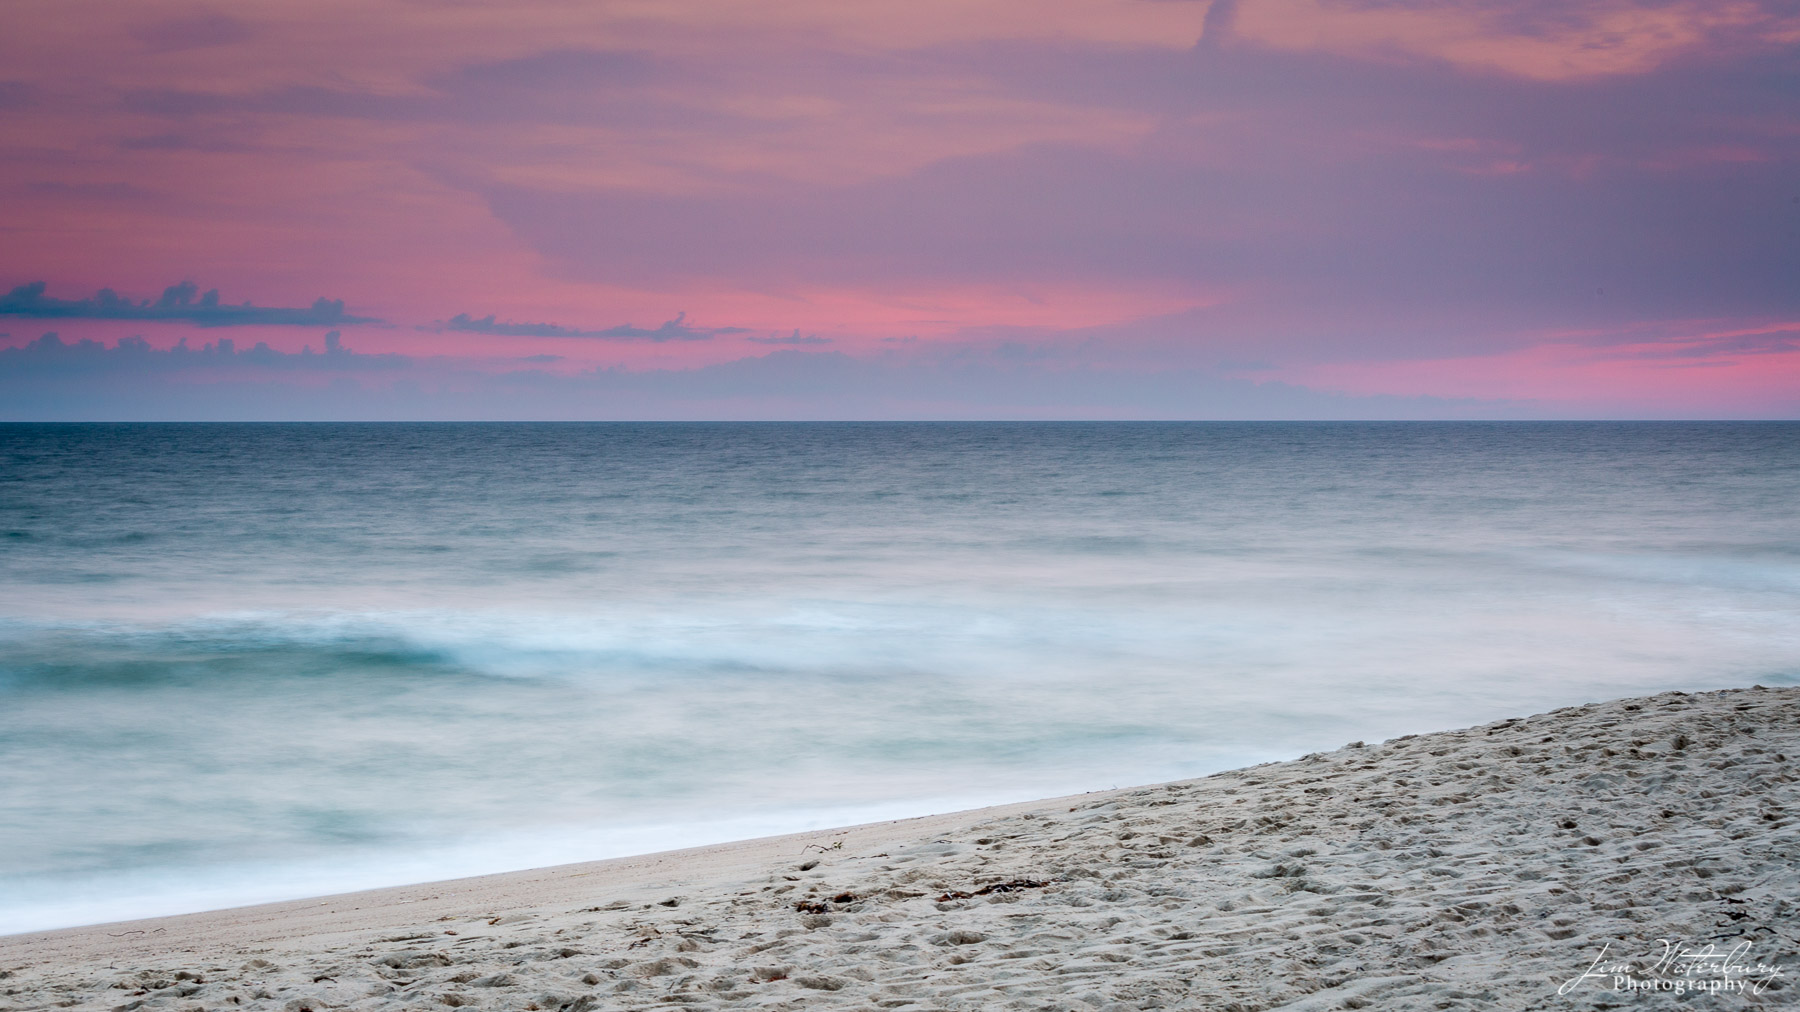 The sky lights up in hues of pink and purple over the ocean at sunset, near Lady's Beach, Nantucket.